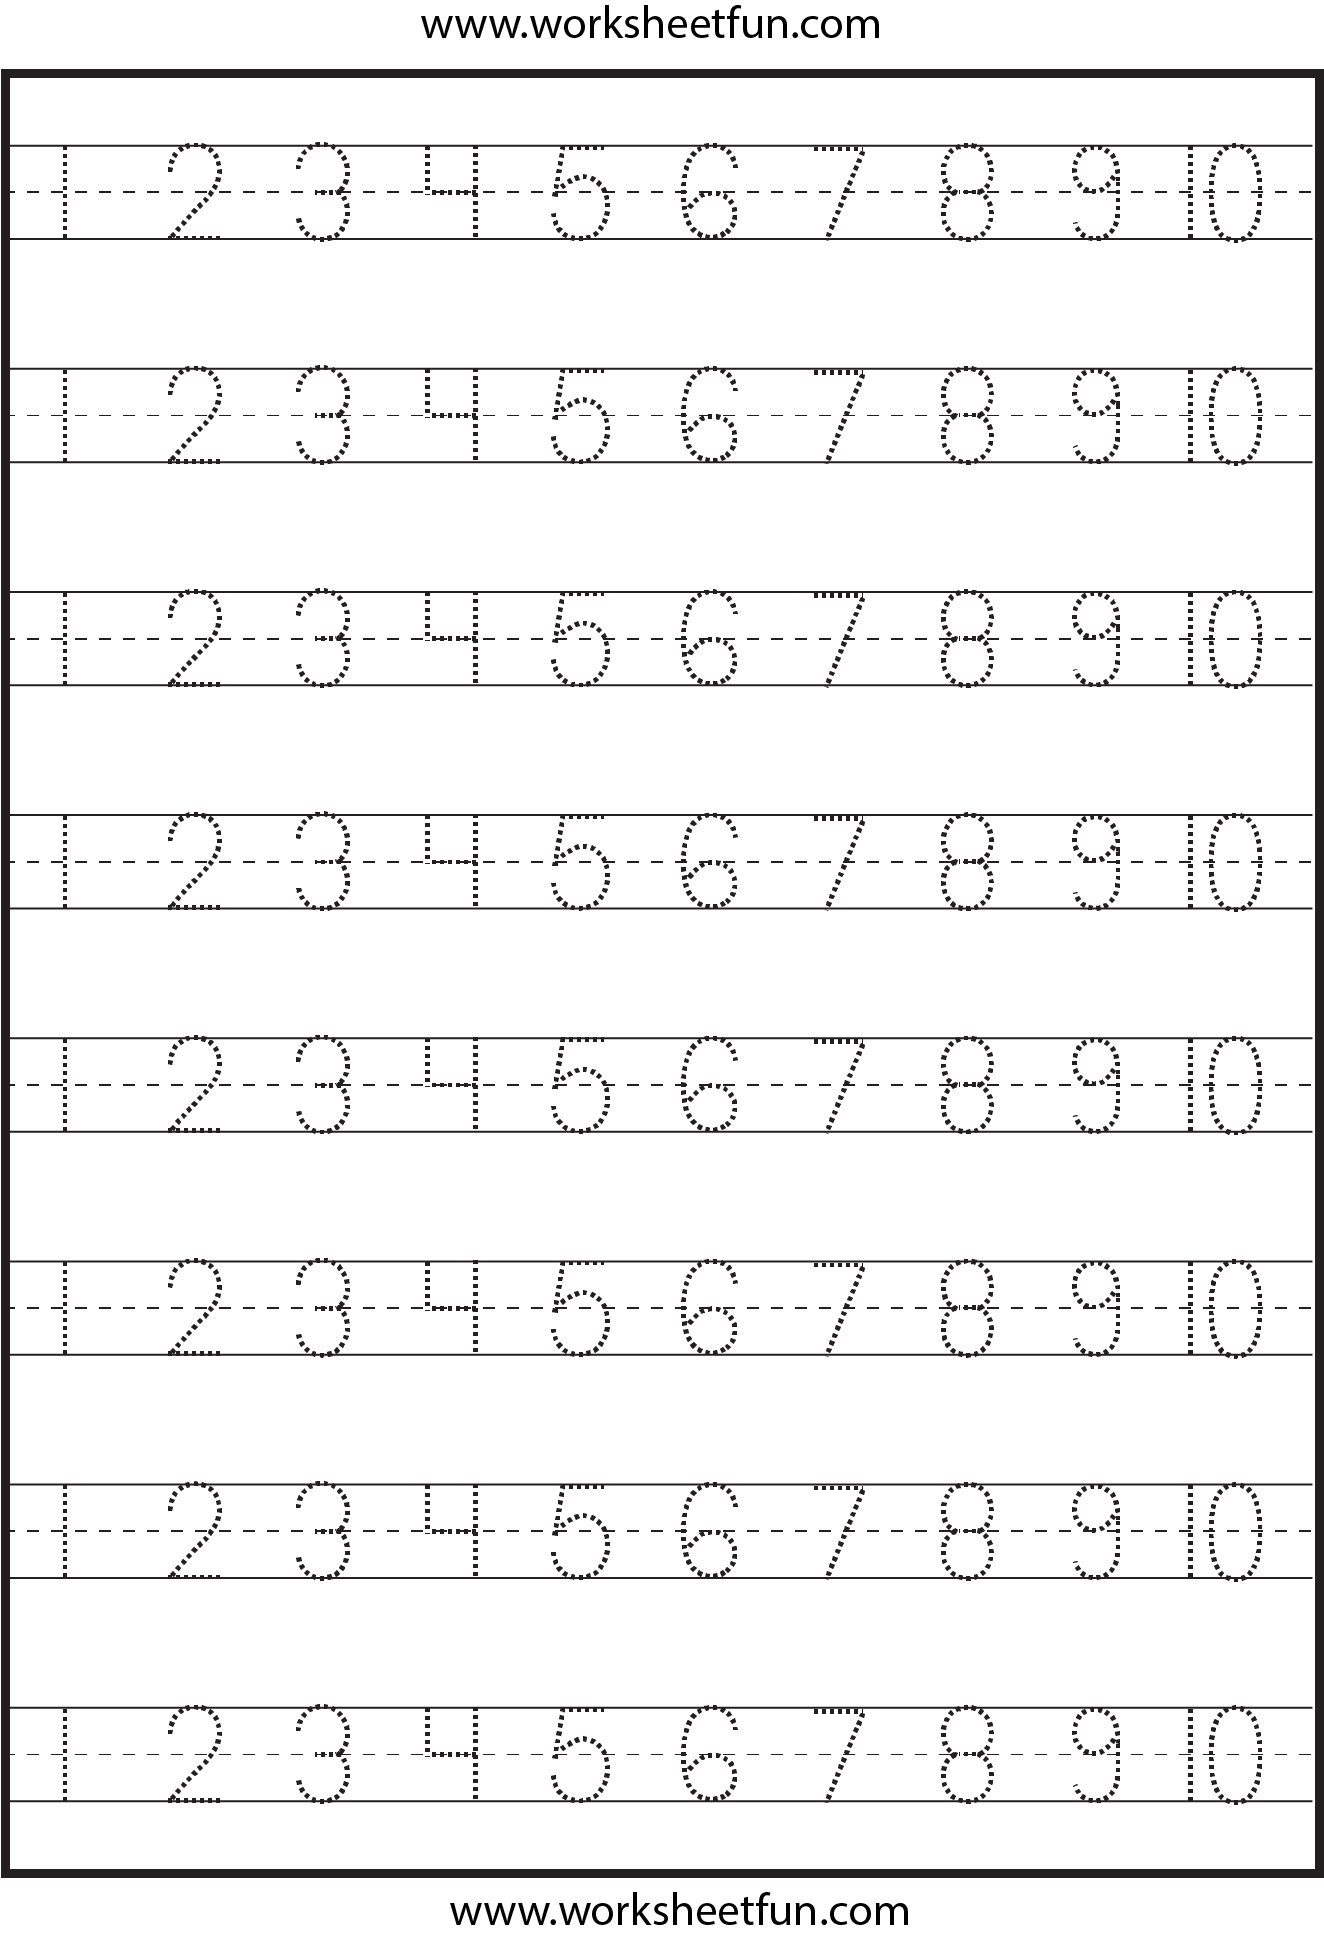 Worksheets Number Worksheets number tracing 1 10 worksheet free printable worksheets tracing